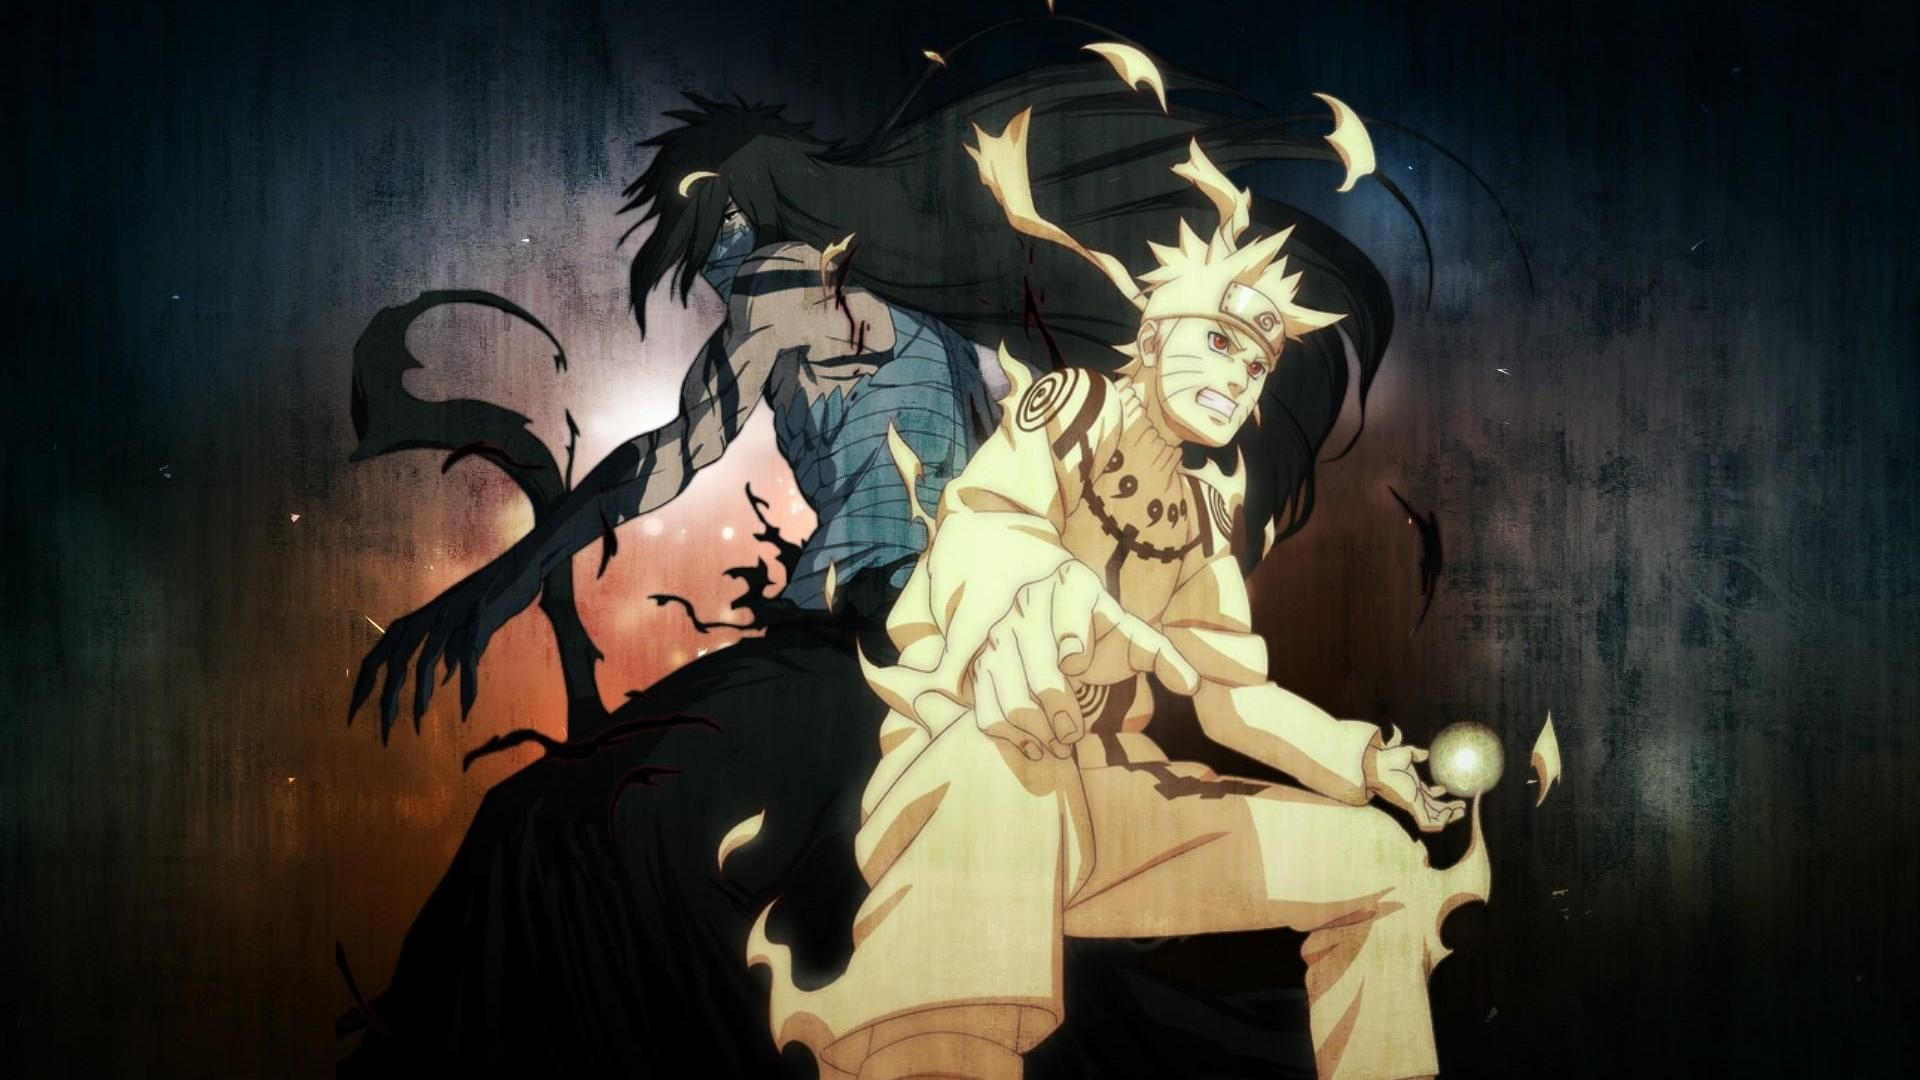 naruto full hd wallpapers (29 wallpapers) – hd wallpapers